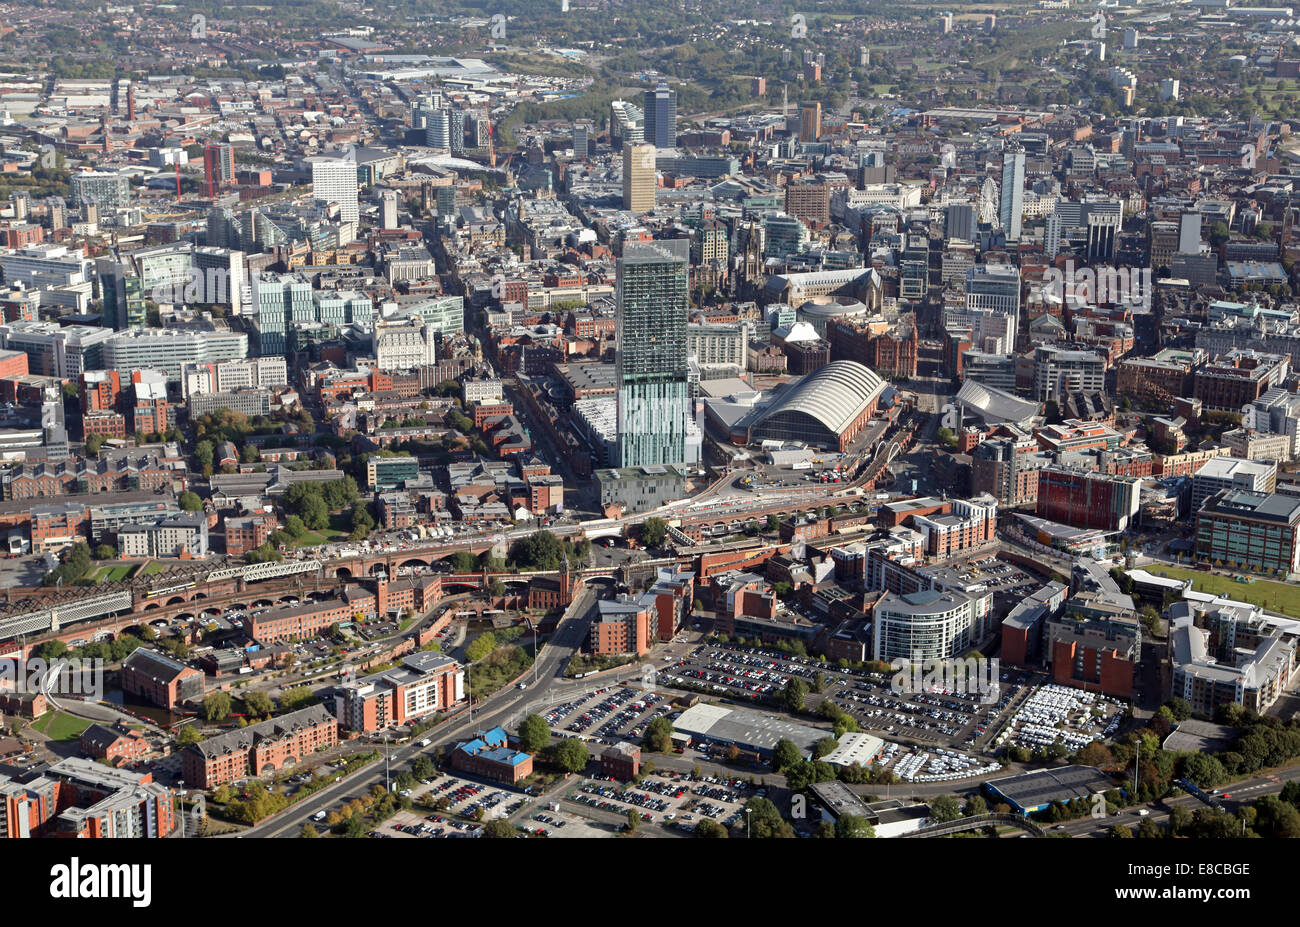 aerial view of Manchester city centre - Stock Image